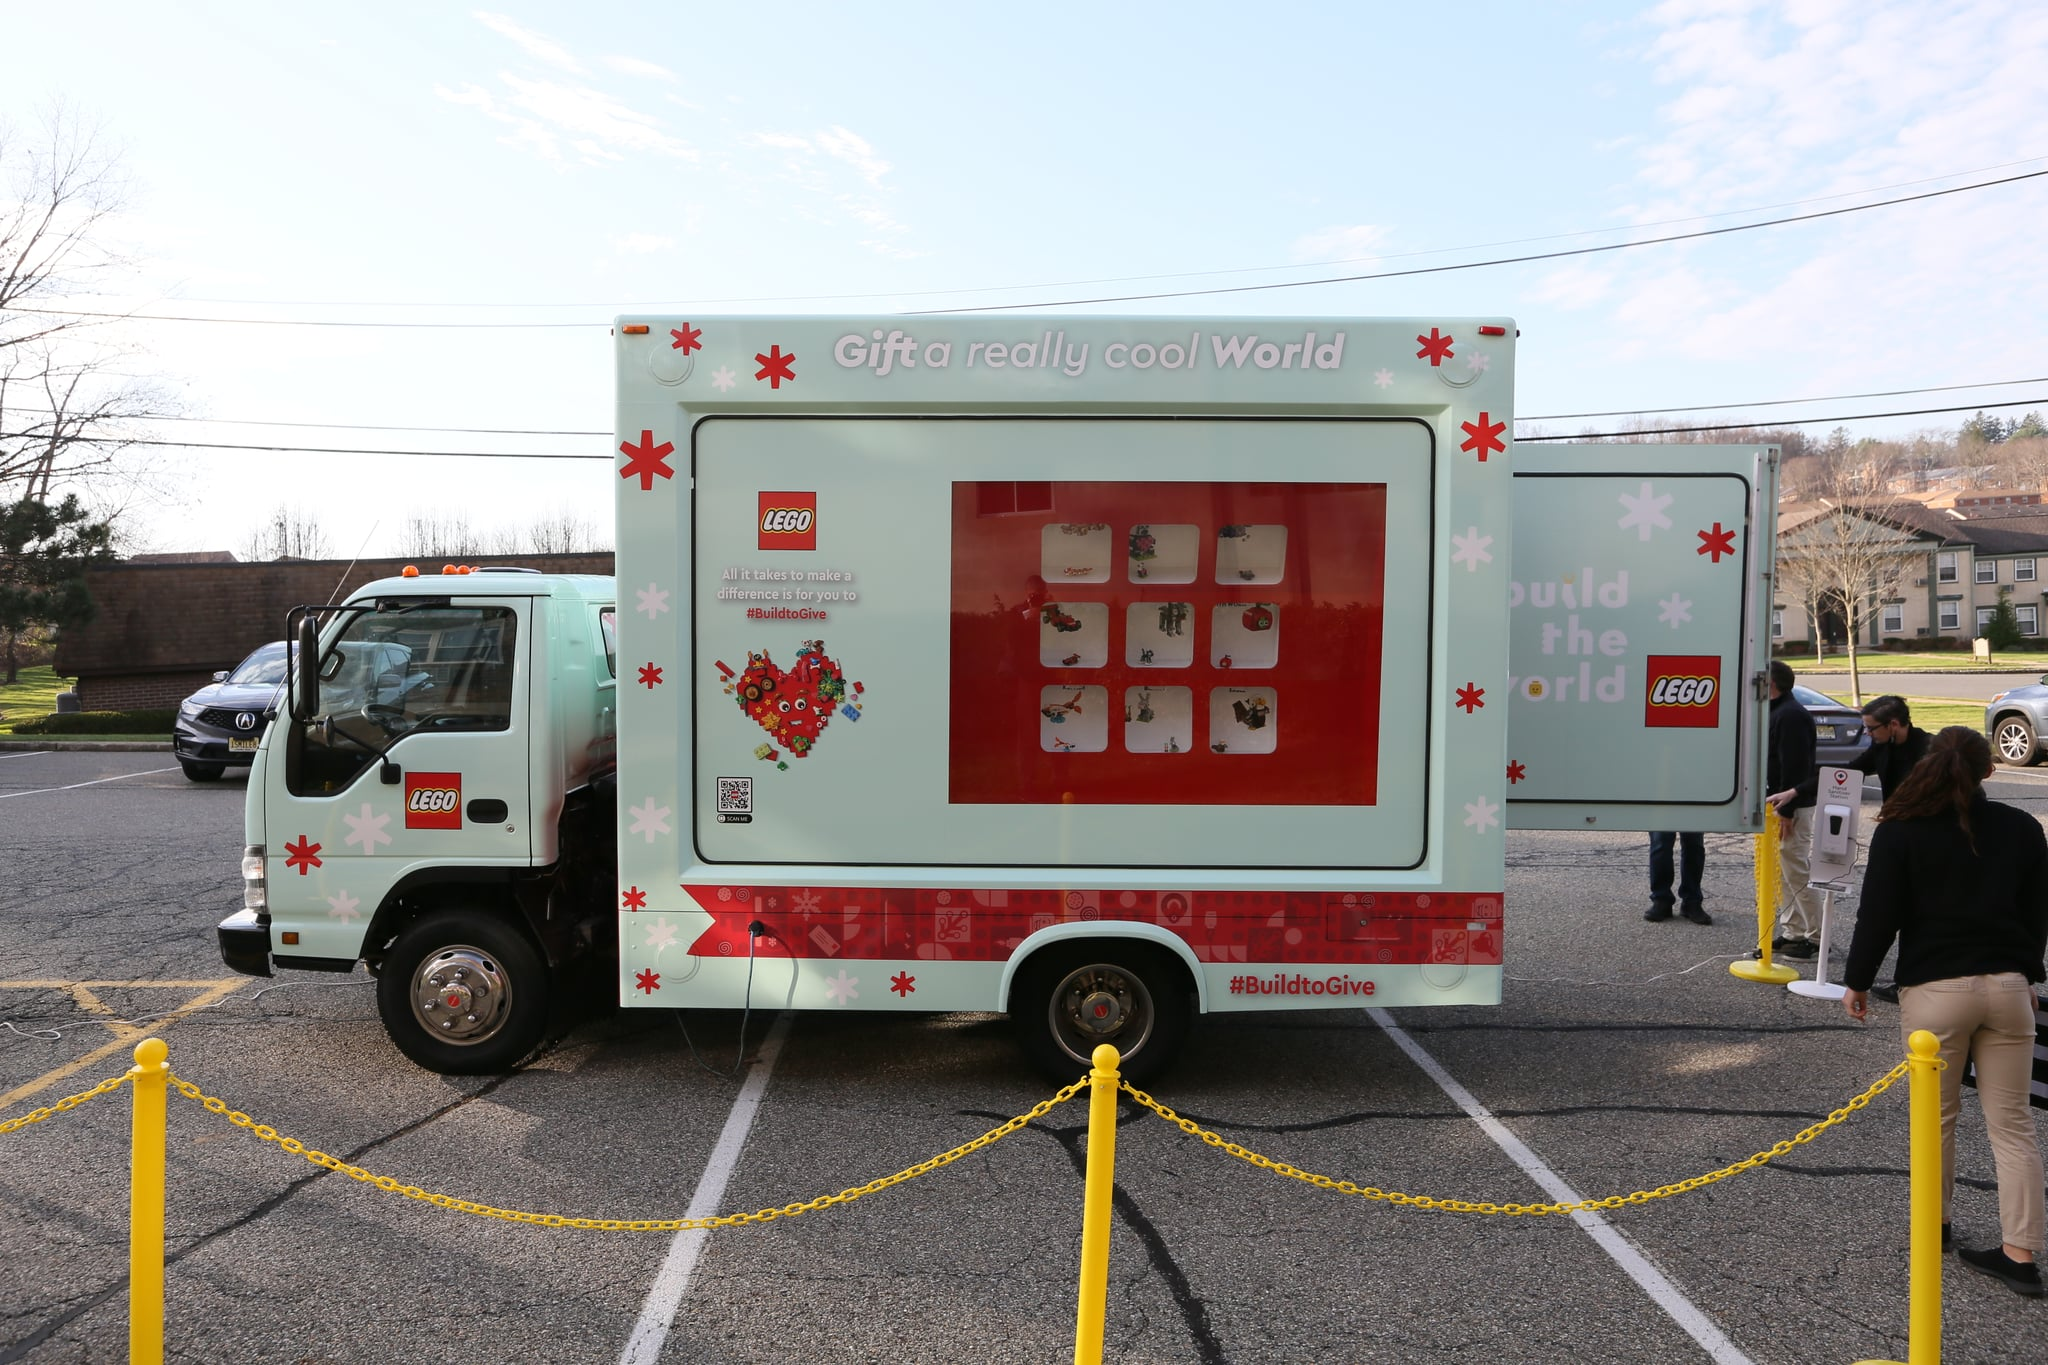 LEGO Holiday Truck Tour on Saturday, Nov. 21, 2020 in Randolph, N.J. (Stuart Ramson/AP Images for The LEGO Group)